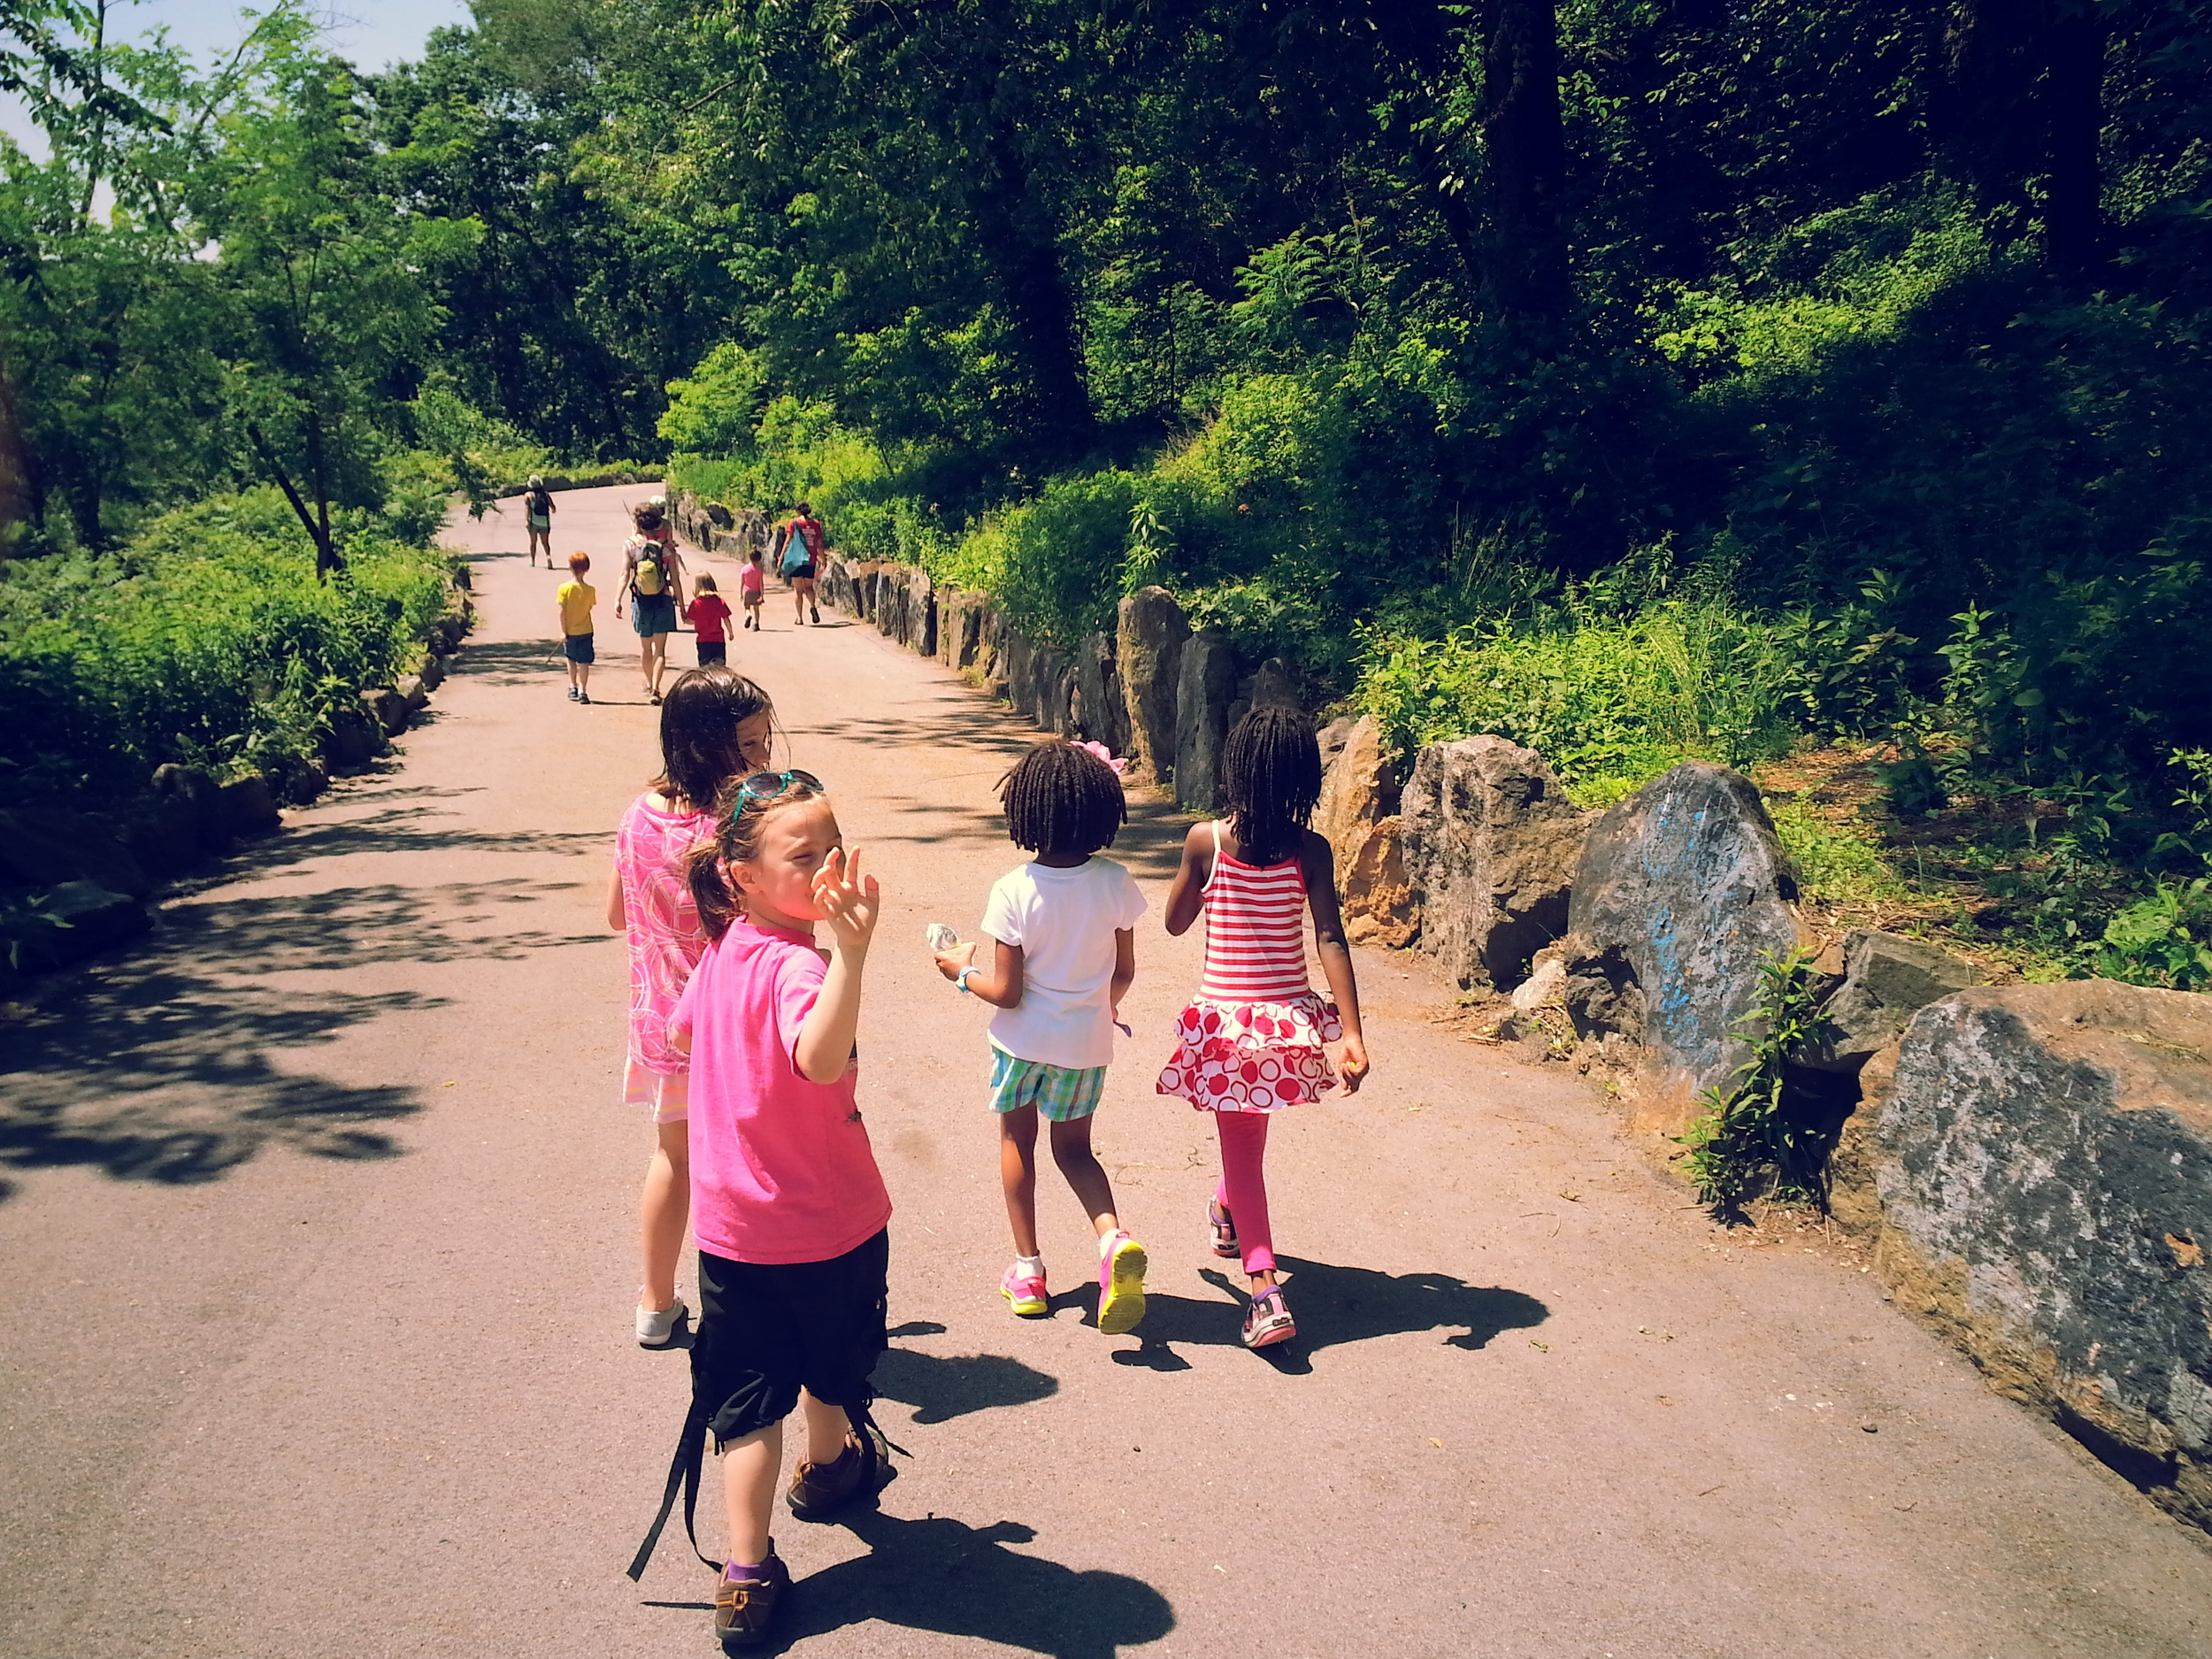 HIKE THE HEIGHTS ANNUAL JUNE FIRST EVENT